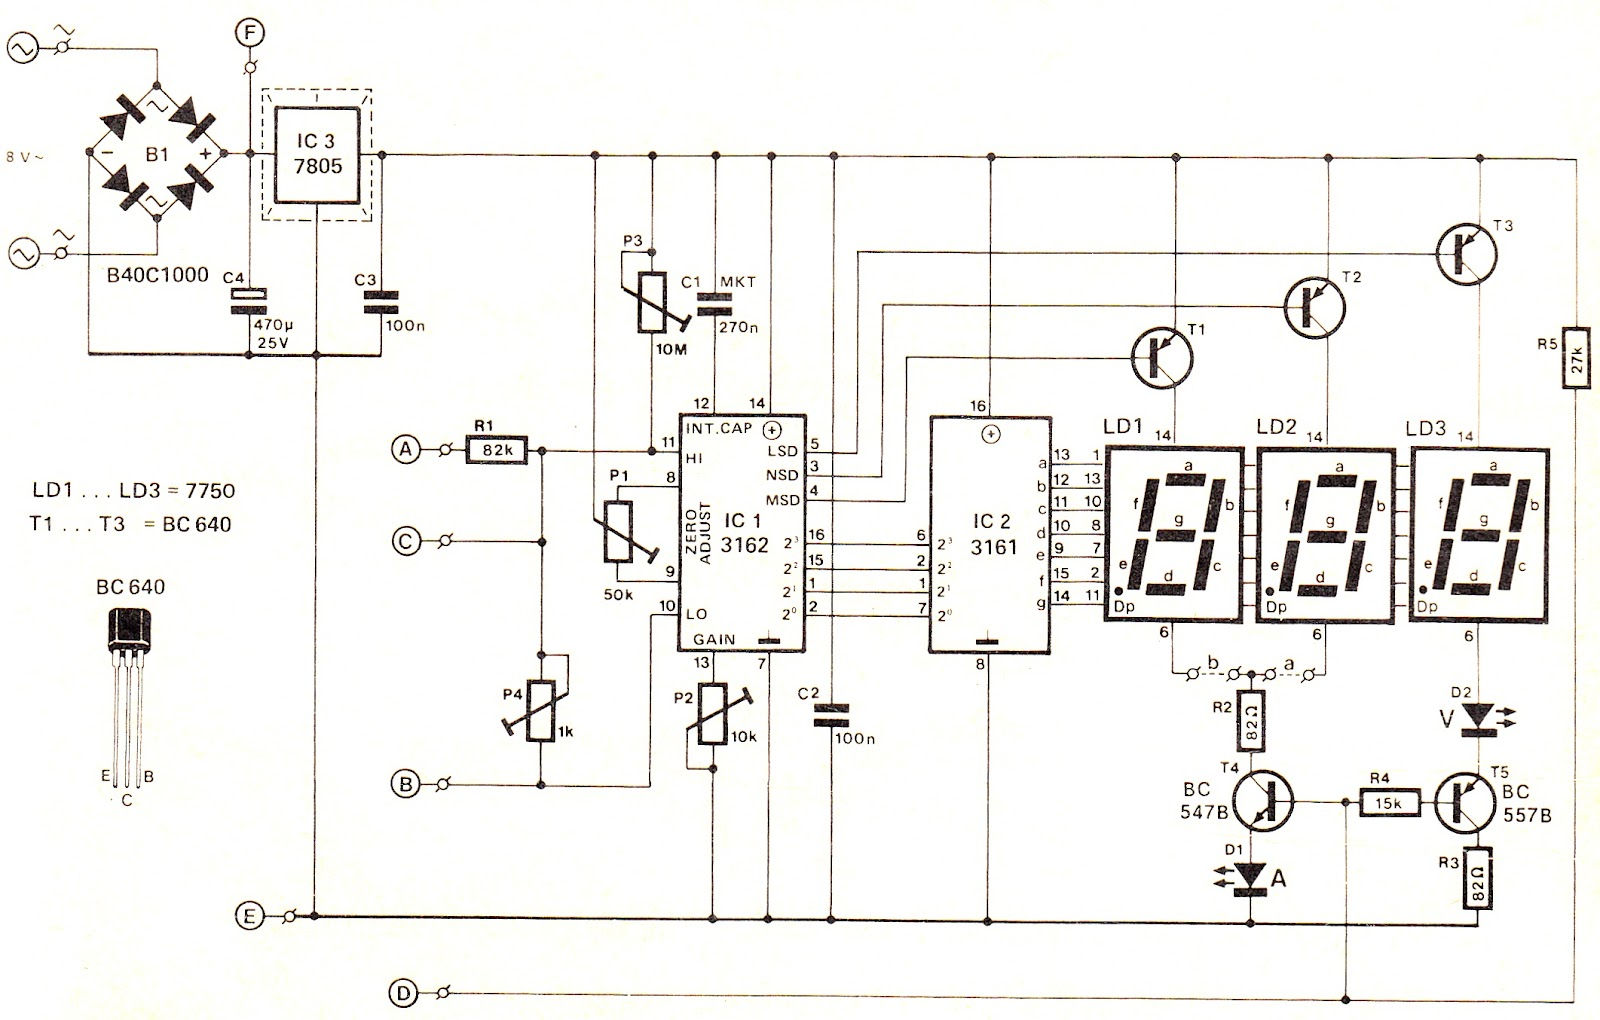 Wondrous Ammeter Shunt Wiring Diagram For A Free Download Wiring Diagrams Wiring Cloud Eachirenstrafr09Org